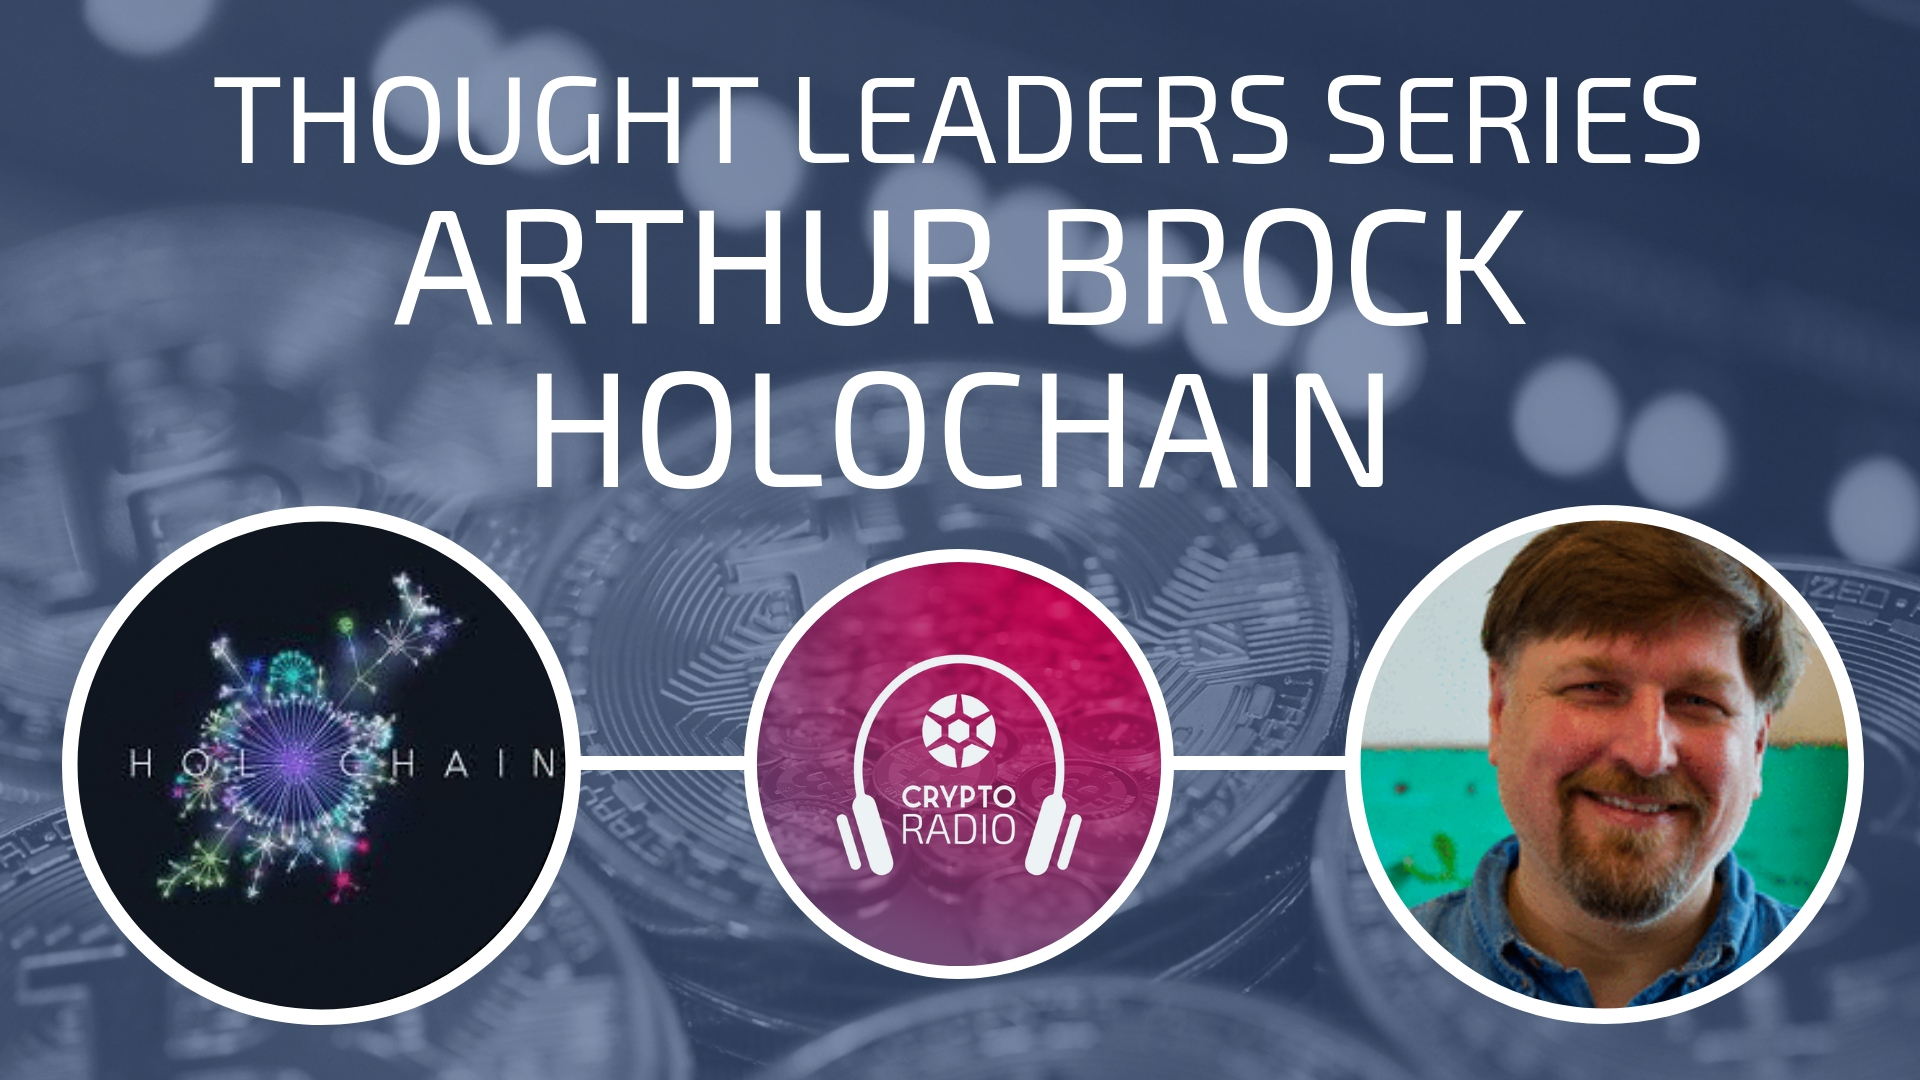 Arthur Brock of Holochain - A Nature-Inspired Approach to Currency